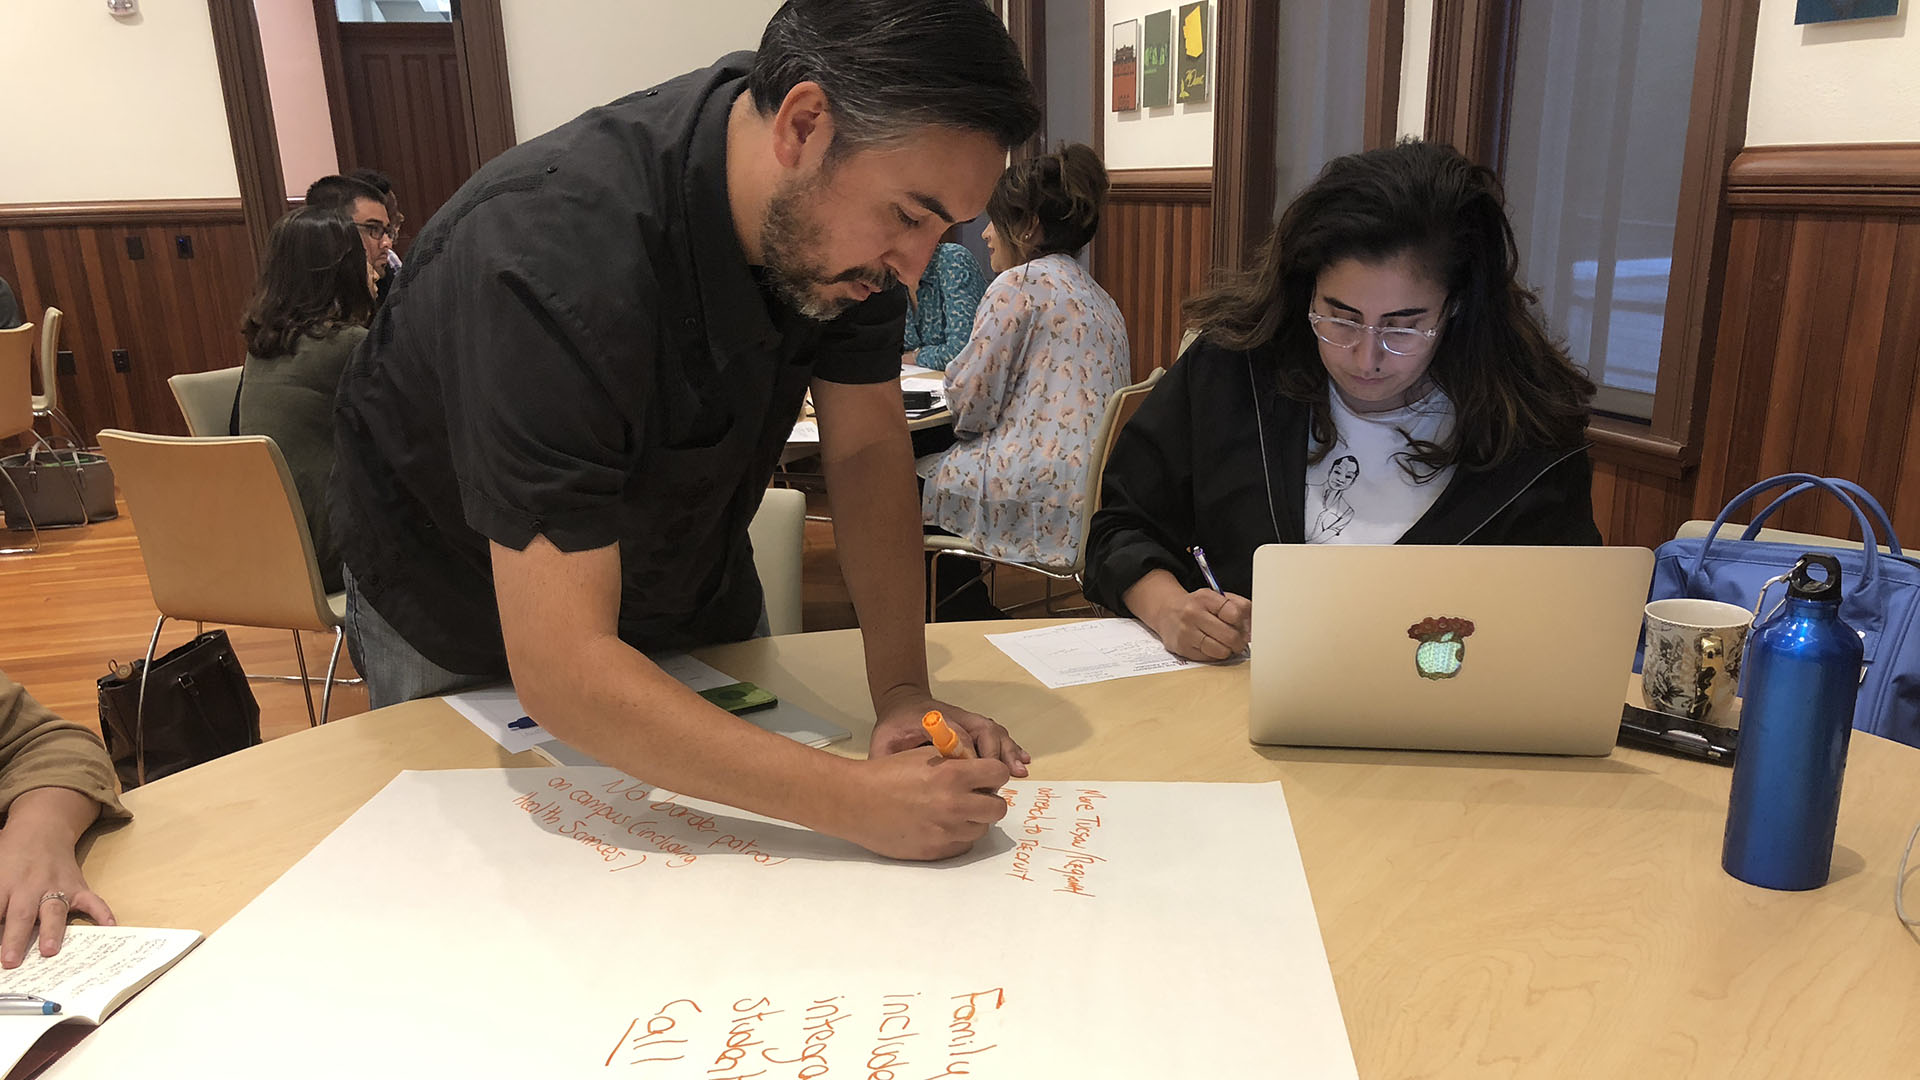 UA faculty member, Charlie Tousell (left), and Mexican American Studies Phd Student, Erika Nacim (right), sketch out their vision for the University of Arizona's Hispanic Serving Institution designation.